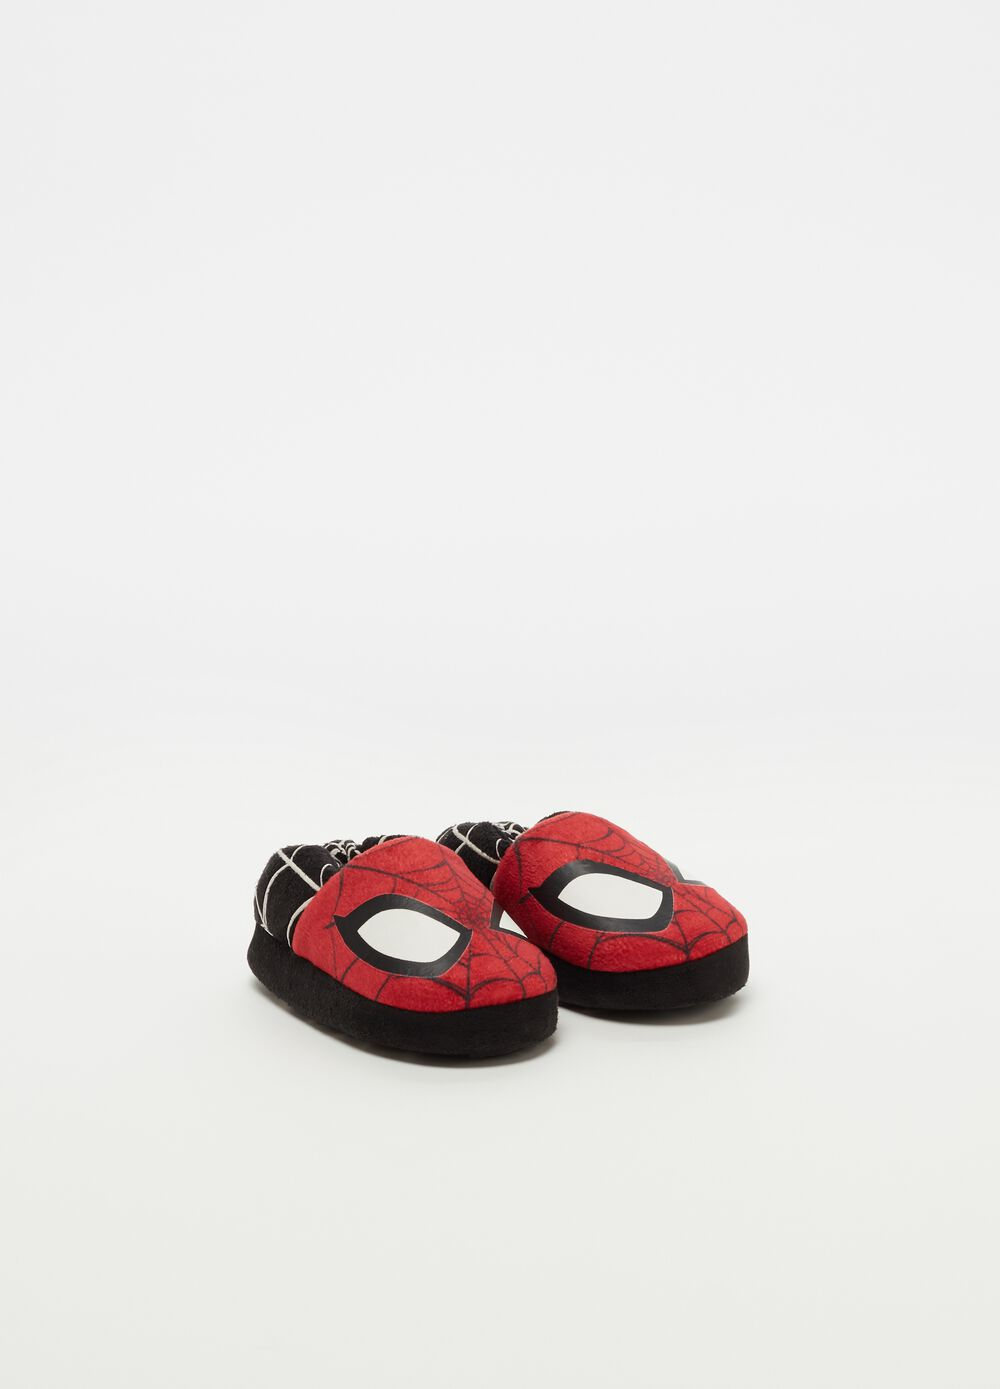 Pantofole fantasia Marvel Spider-Man